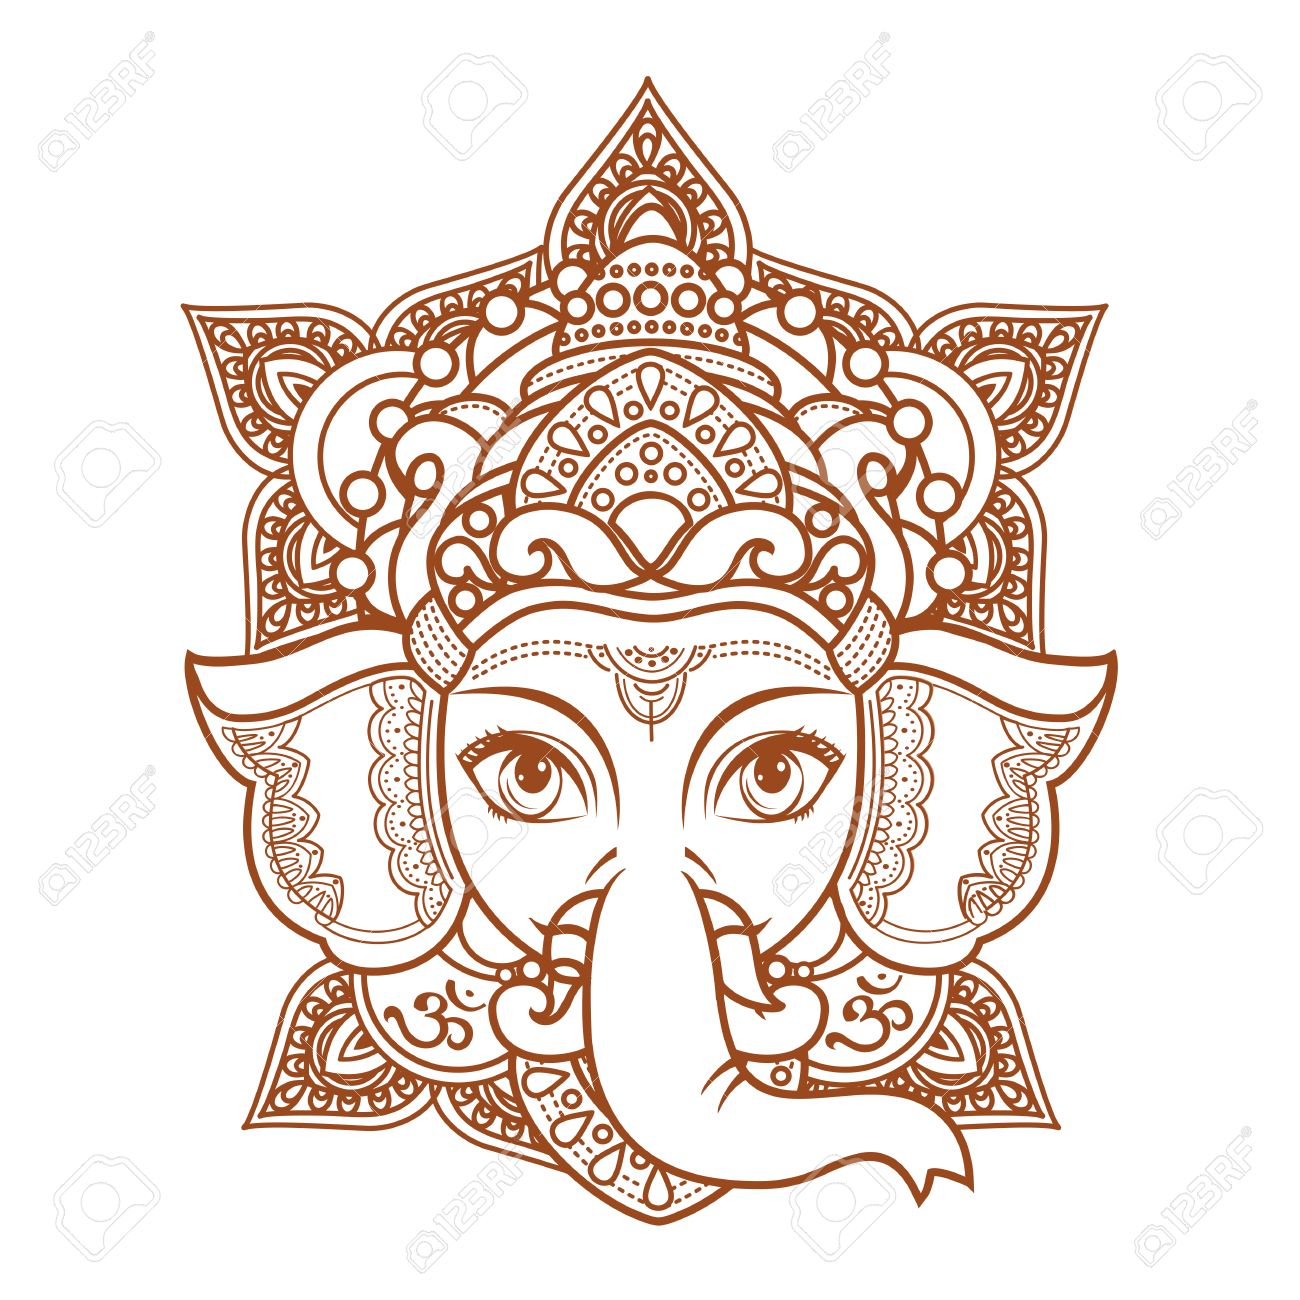 Hindu Elephant Head God Lord Ganesh Hinduism Paisley Background